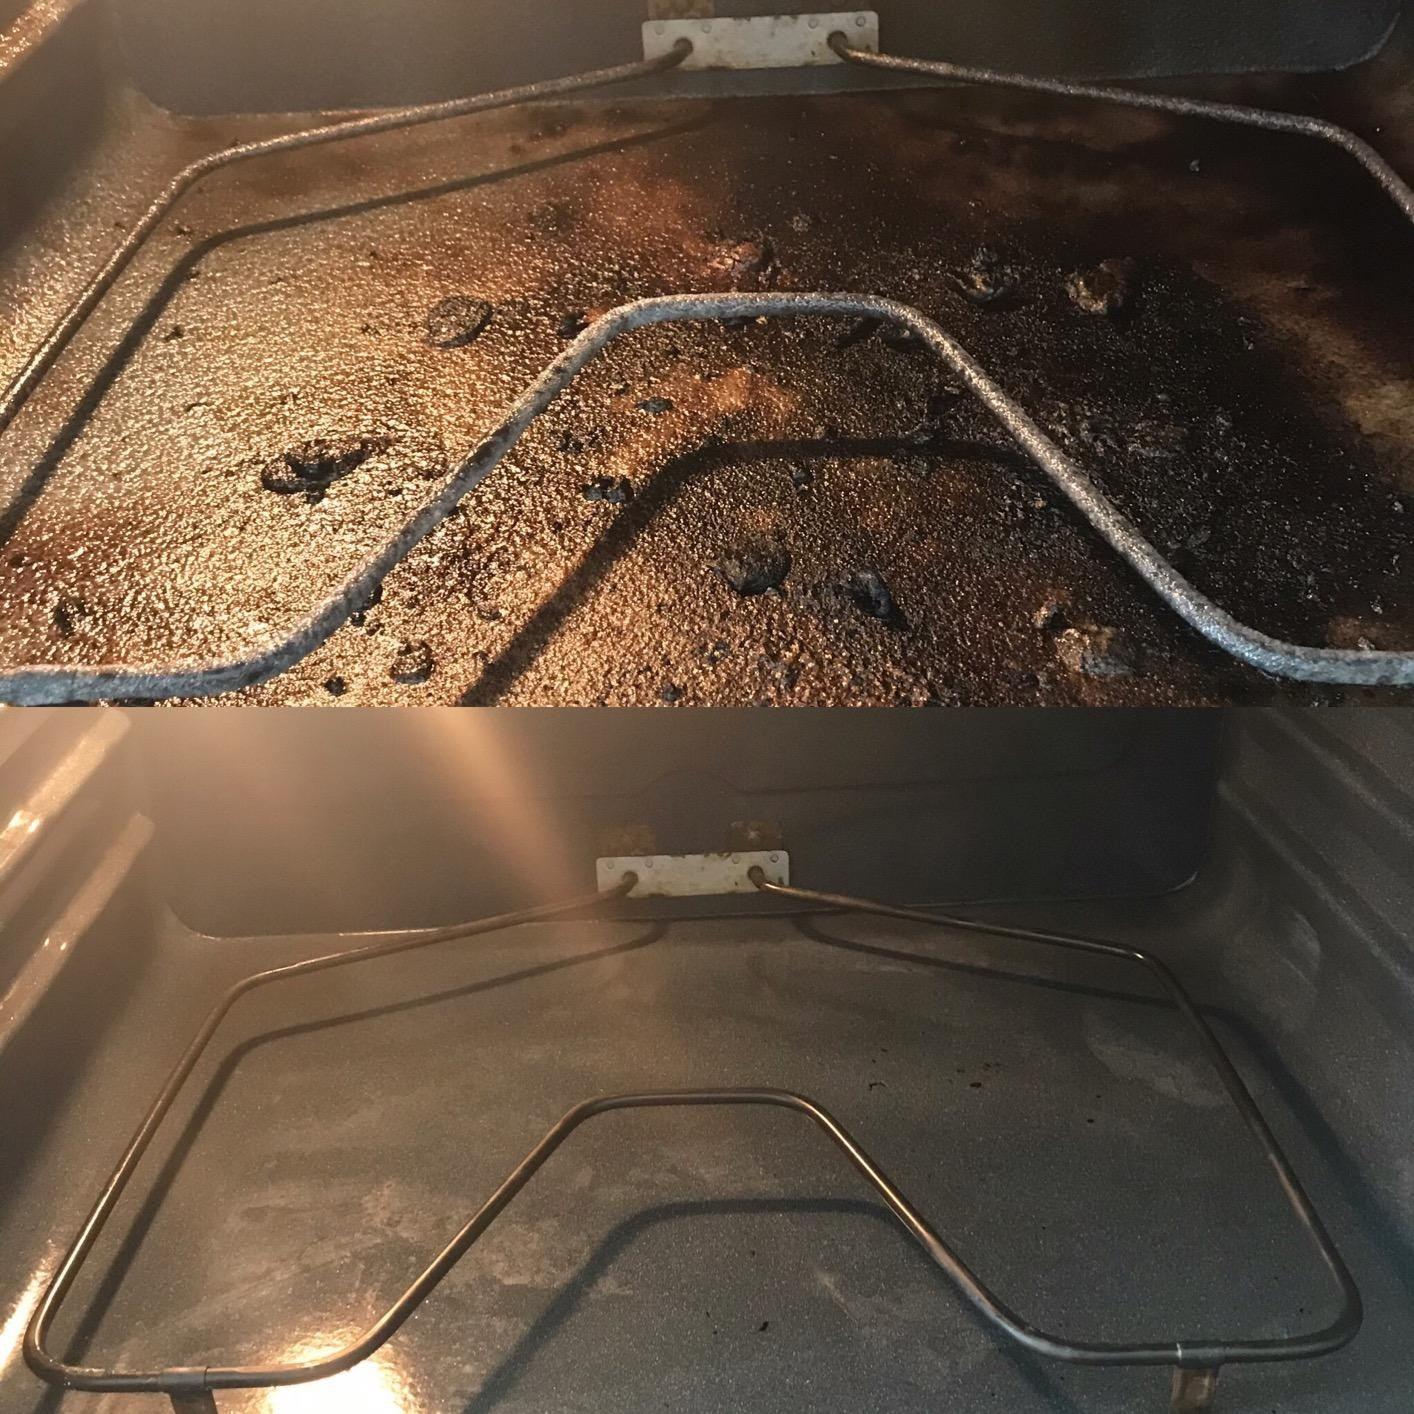 Reviewer's dirty oven with huge chunks of burned food bits stuck to it made totally clean